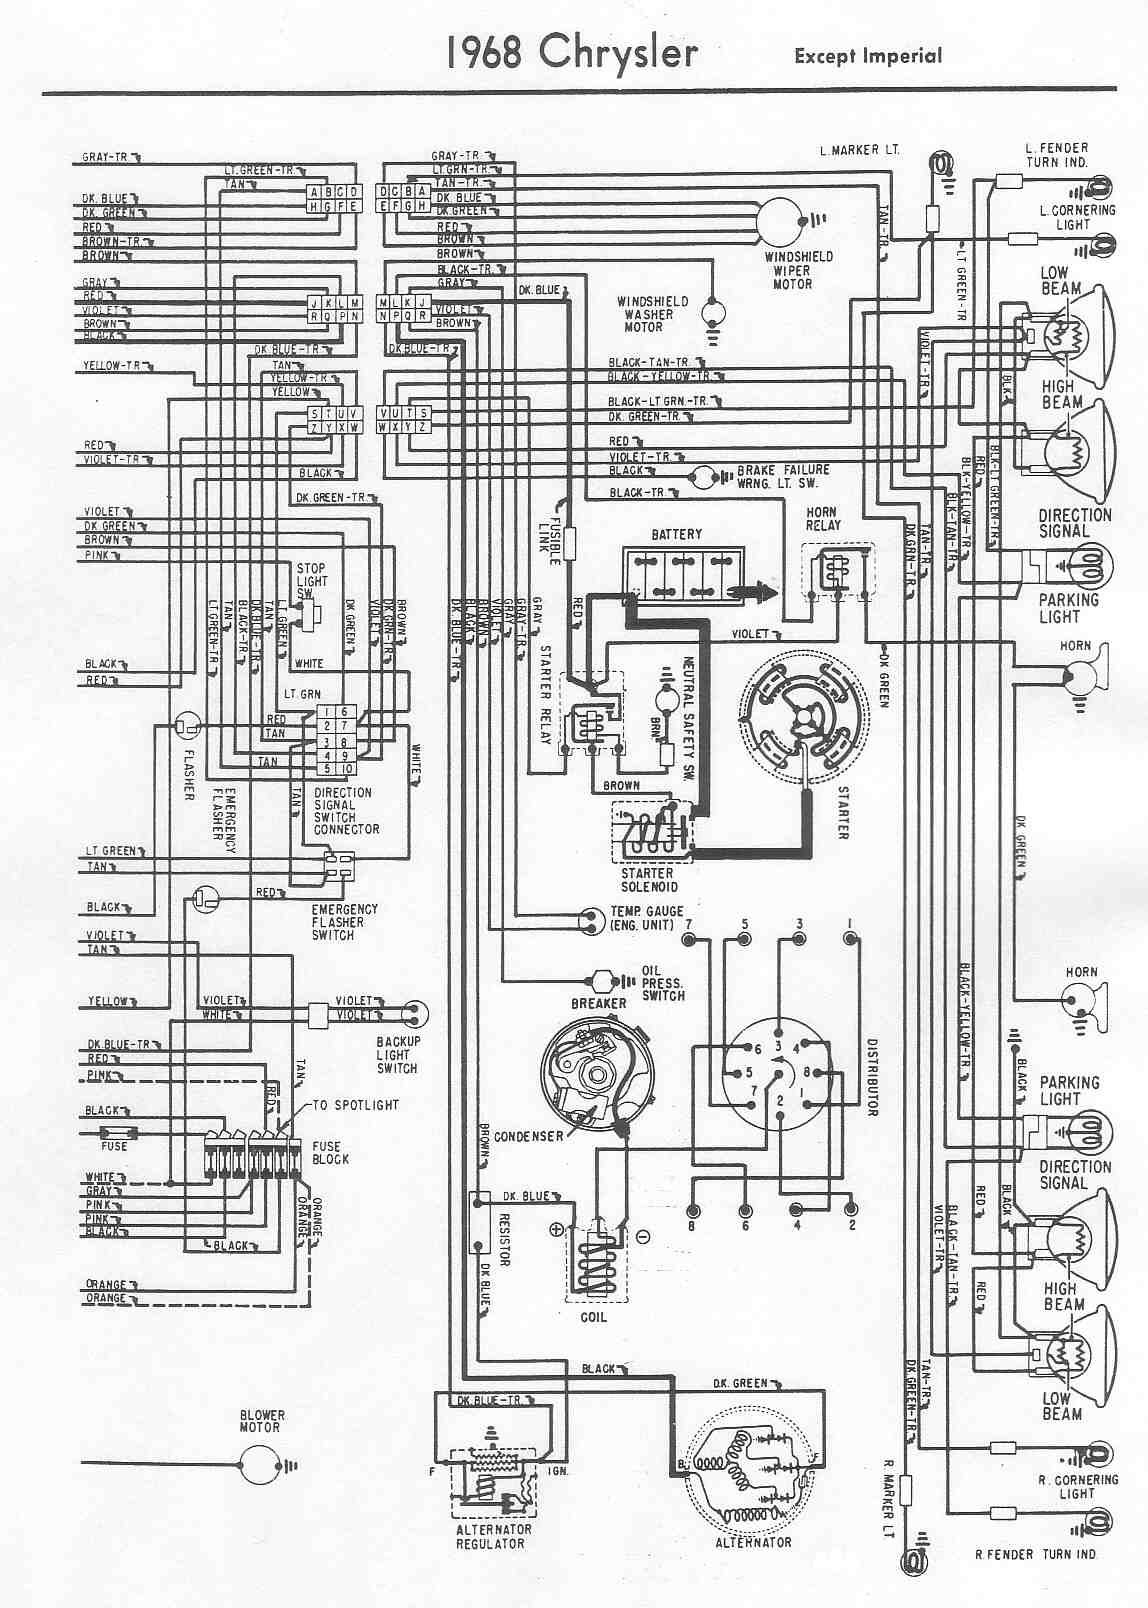 Chrysler Car Manuals Wiring Diagrams Pdf Fault Codes 2014 Audi A6 Diagram Free Download